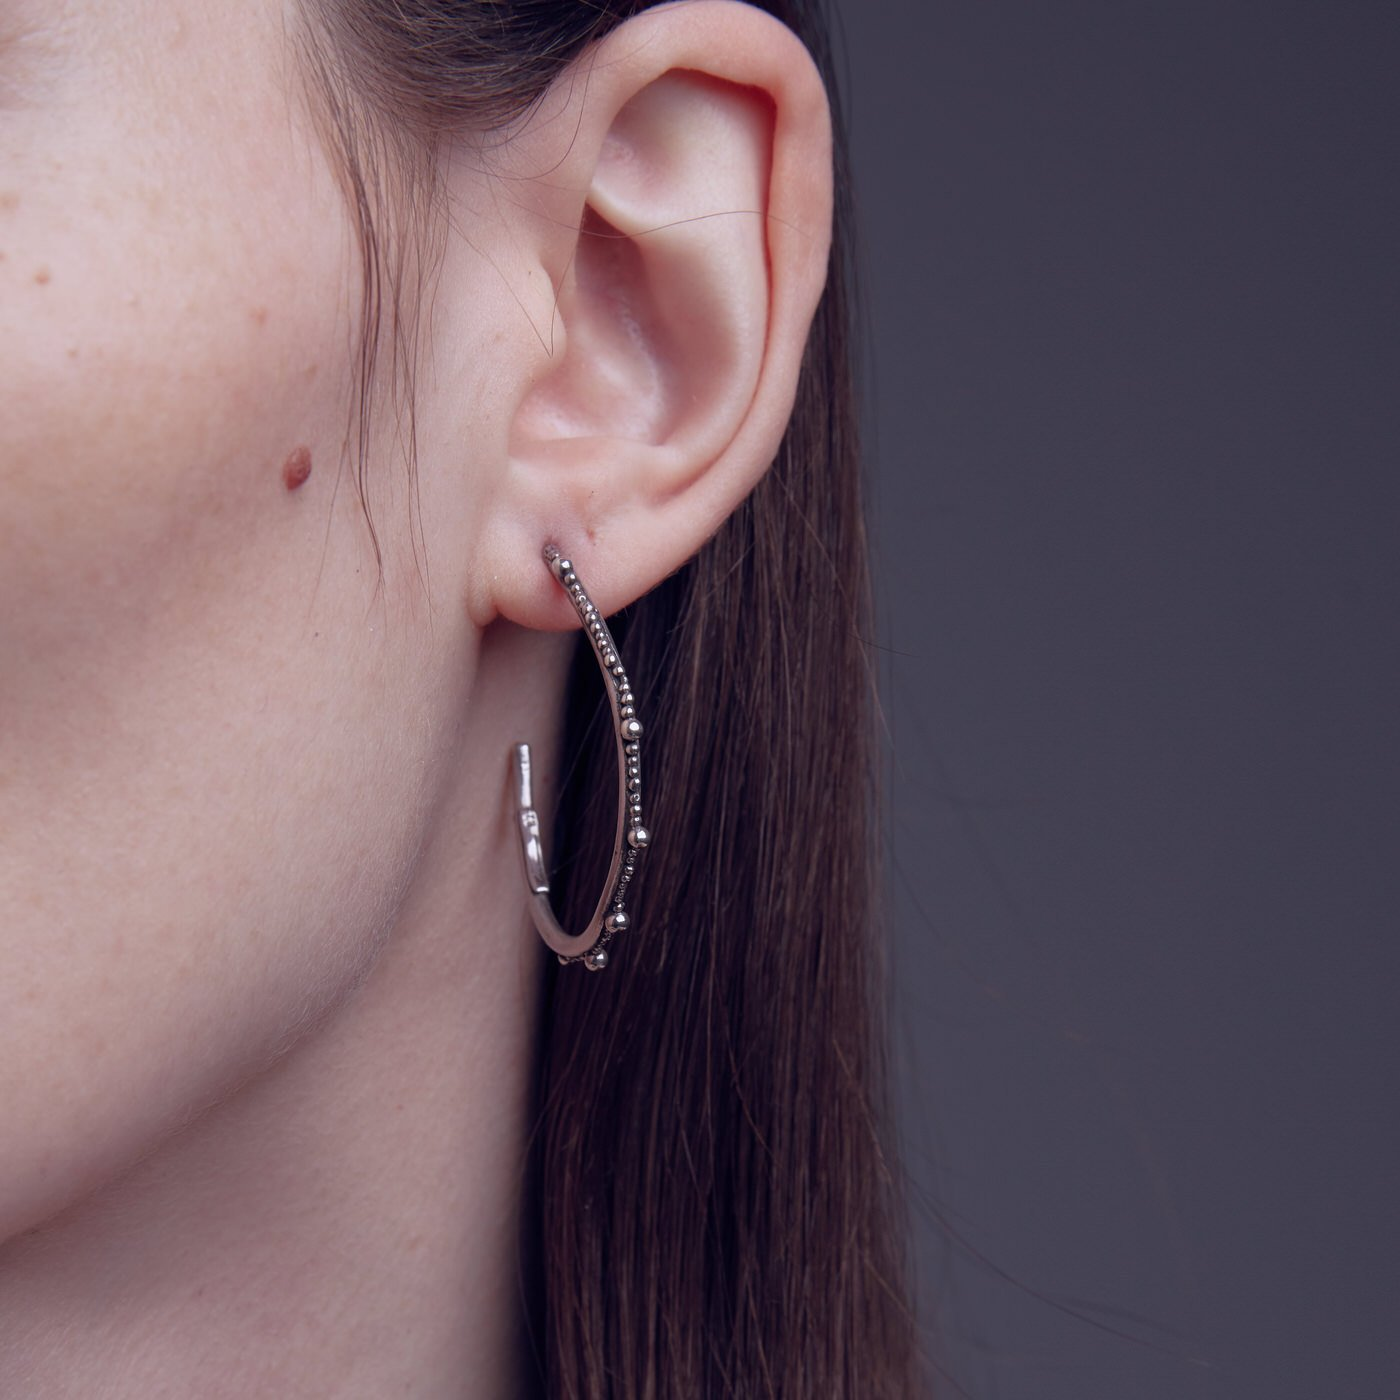 earring cenote maxi pearl hoop silver product view innan jewellery